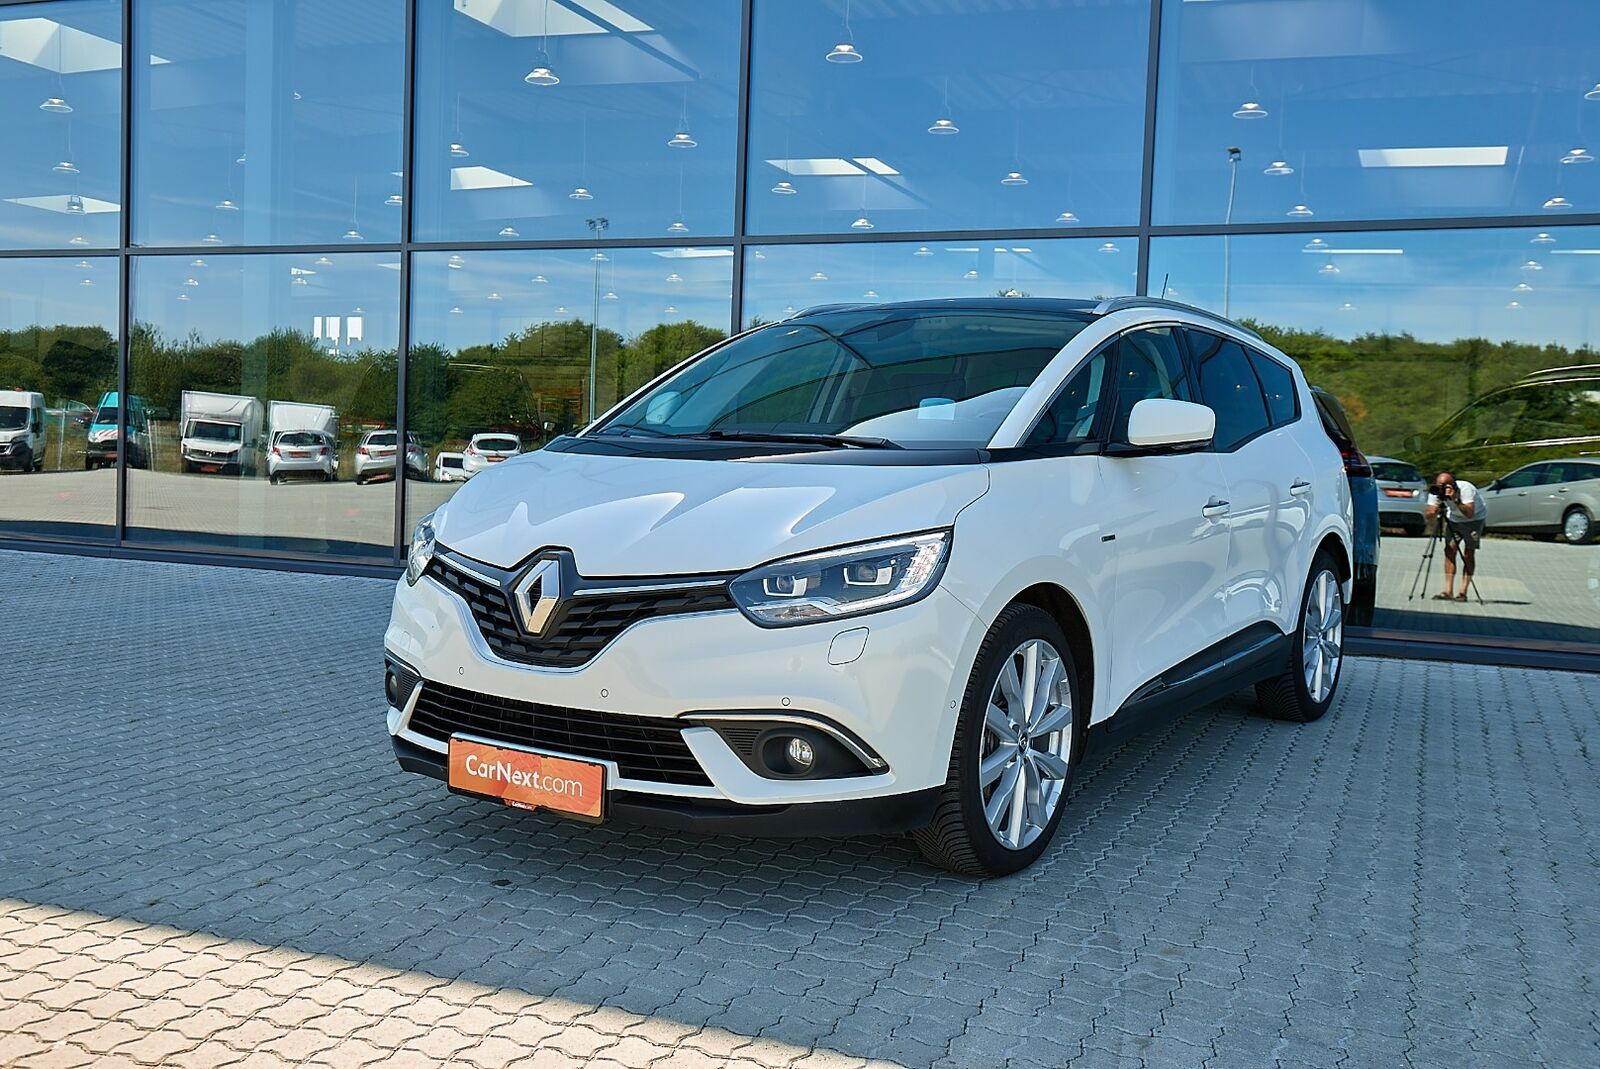 Renault Grand Scenic IV 1,6 dCi 160 Bose Edition EDC 7prs 5d - 249.900 kr.